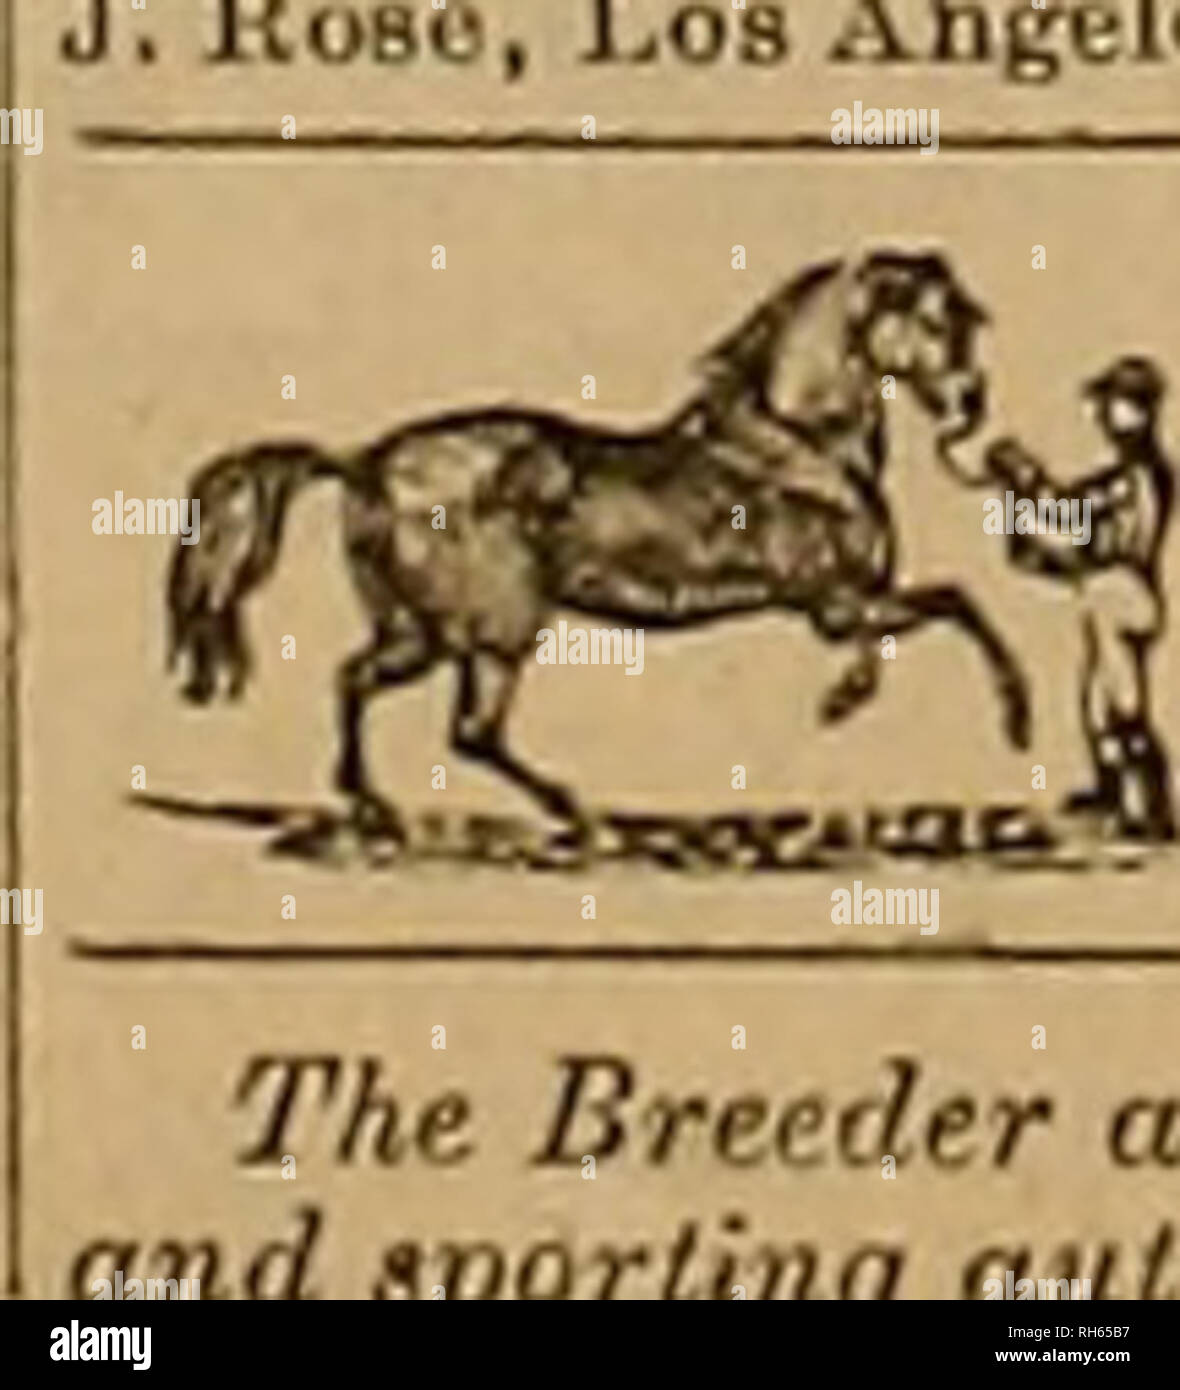 . Breeder and sportsman. Horses. 332 frjfcete aM §p$xlmmu> May 26 RACES. Golden Gate Third District Agricultural & Mechanical Fair Association. DISTRICT 2*0. 1-OAKIA3HD, ALAMEDA COL STY. SPEED PROGRAMME Agricultural Ass'n SPEED PROGRAMME. MONDAY, SEPT. 3, 1883. No I—Bunning: Golden Gate Purse, $500, for all two-year-olds; three-quarter-mile dash; $J00 to first horse, SISO to second ami £50 to third. o — samedav; running Alameda purse, 50OO, for all three-vear-olds; oue-anri-oue-quiirter-niile dash; $300 to first horse. §150 to second, S6.1 to third 0 3—samertav; running: Pardee Purse, - Stock Image